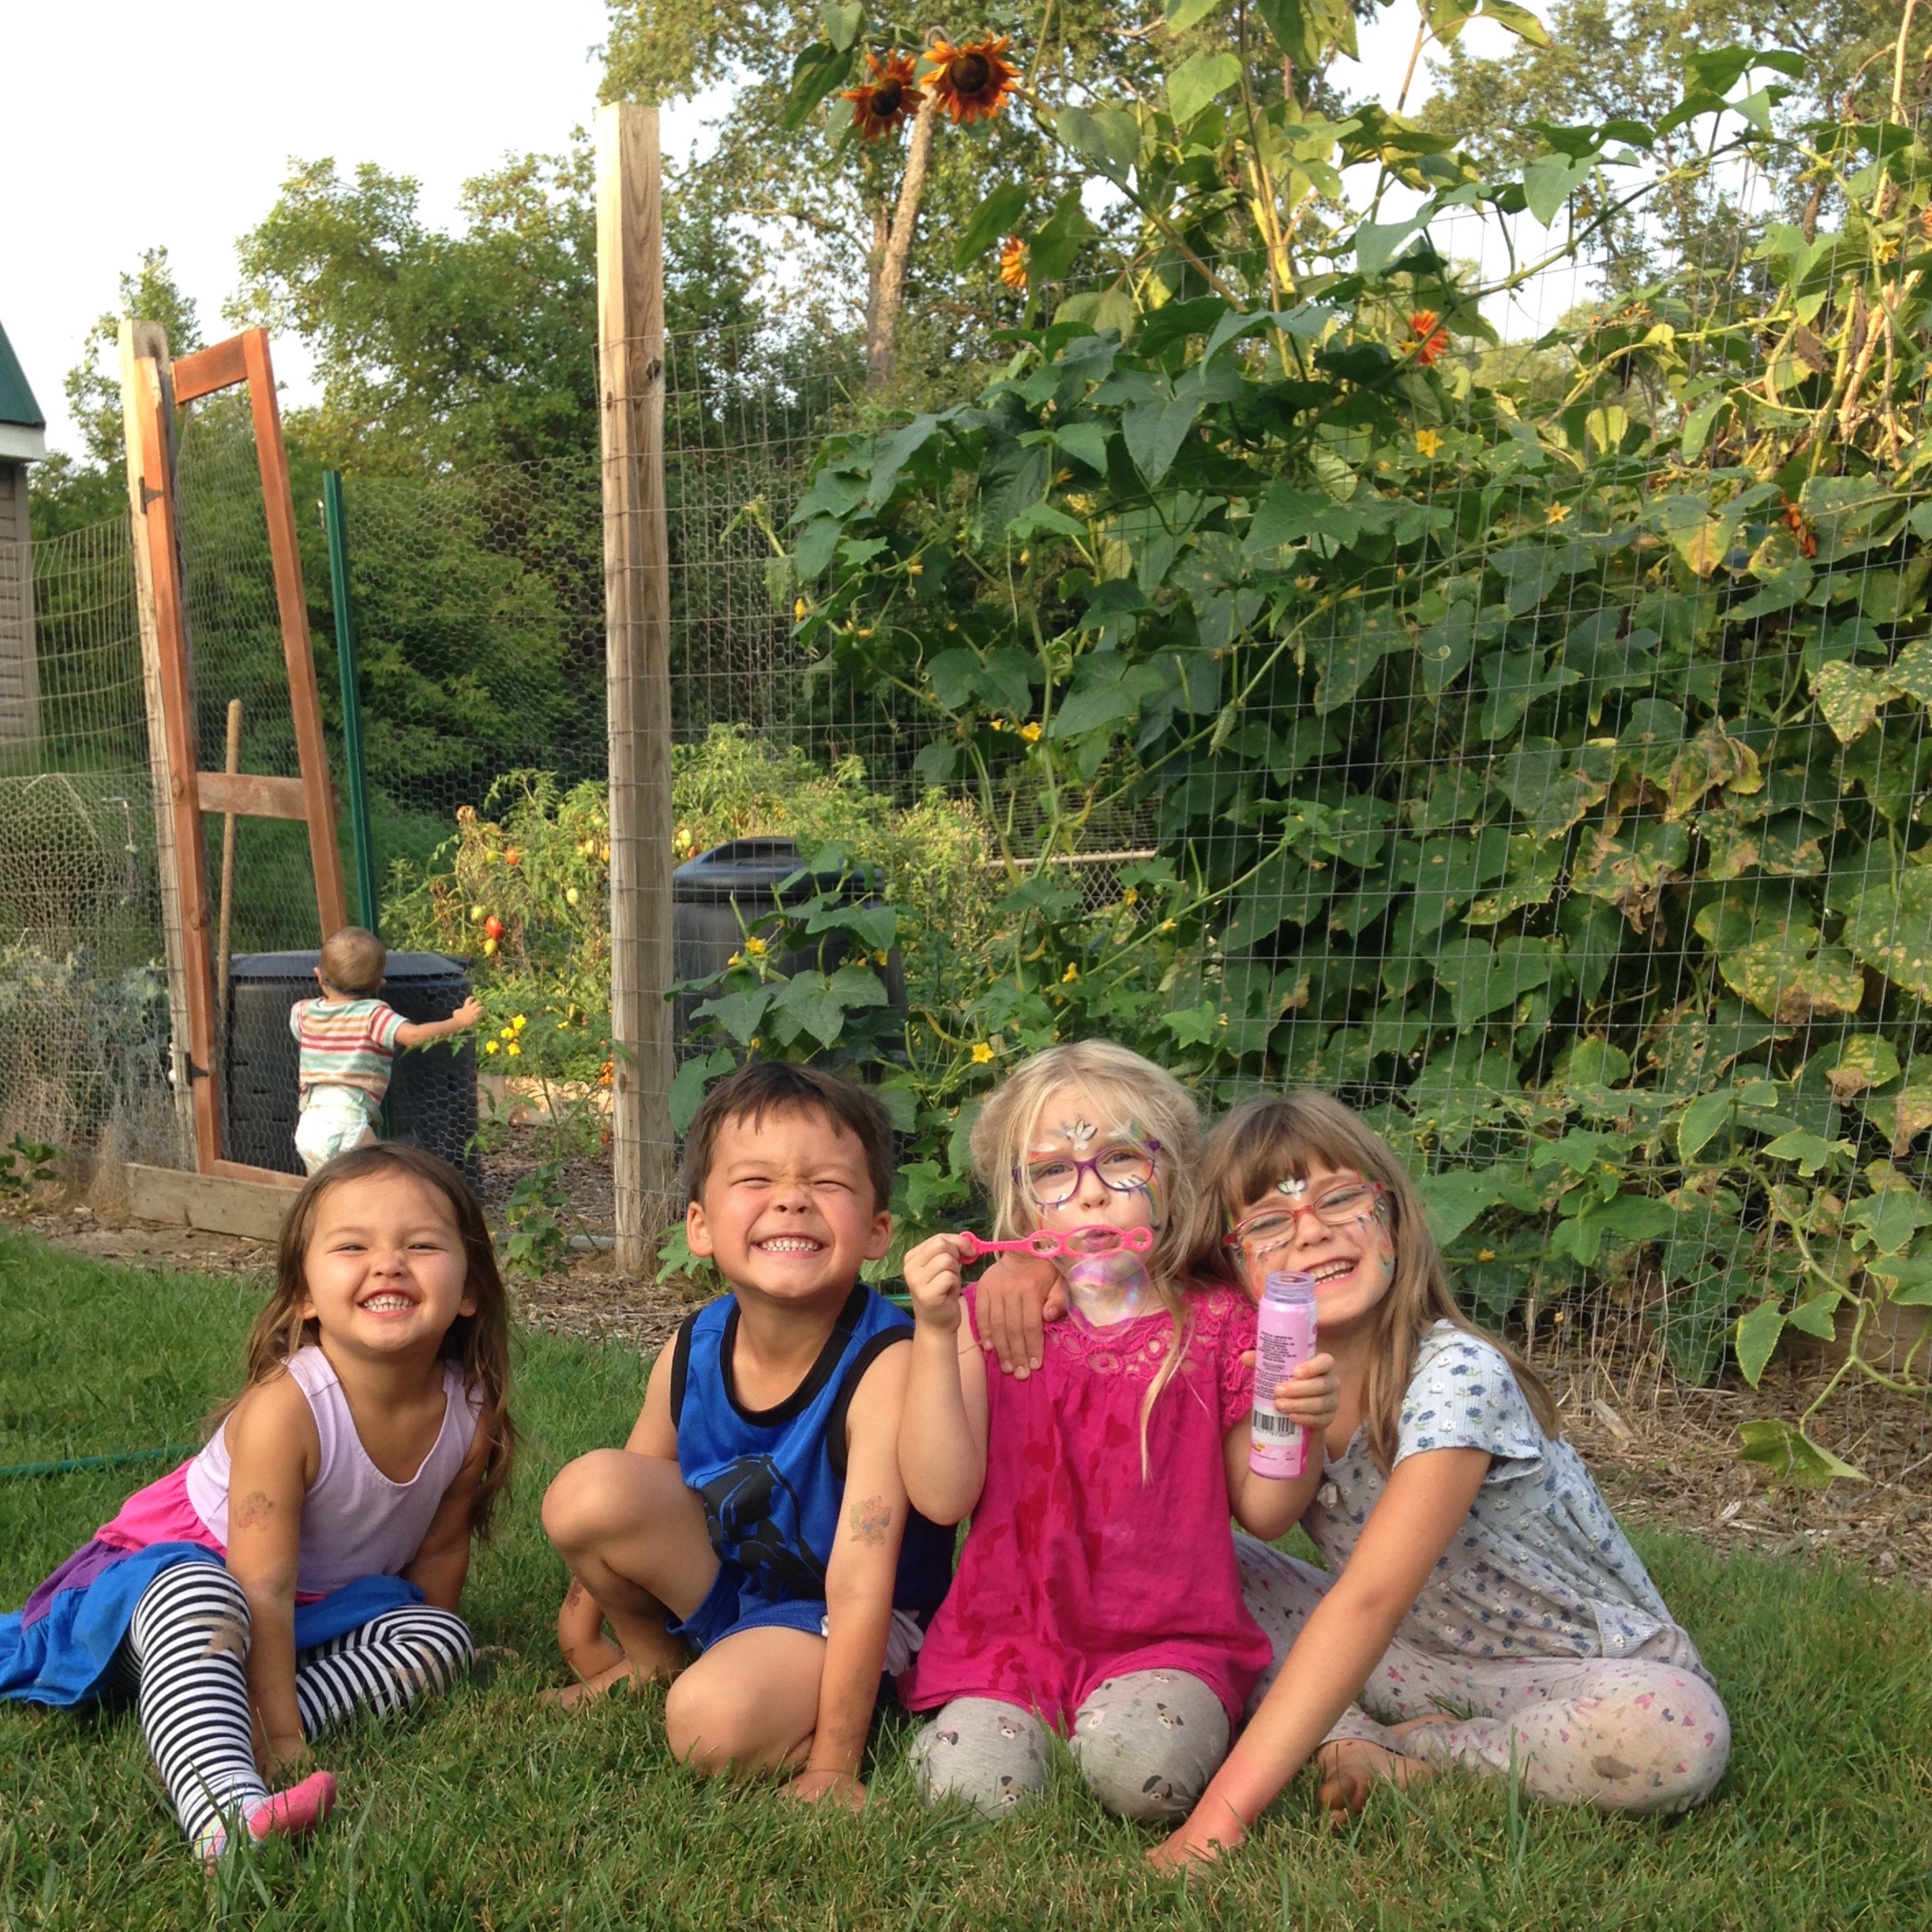 Our kids with friends in front of our garden. The little one was too busy for a picture - had his eye on some cherry tomatoes!